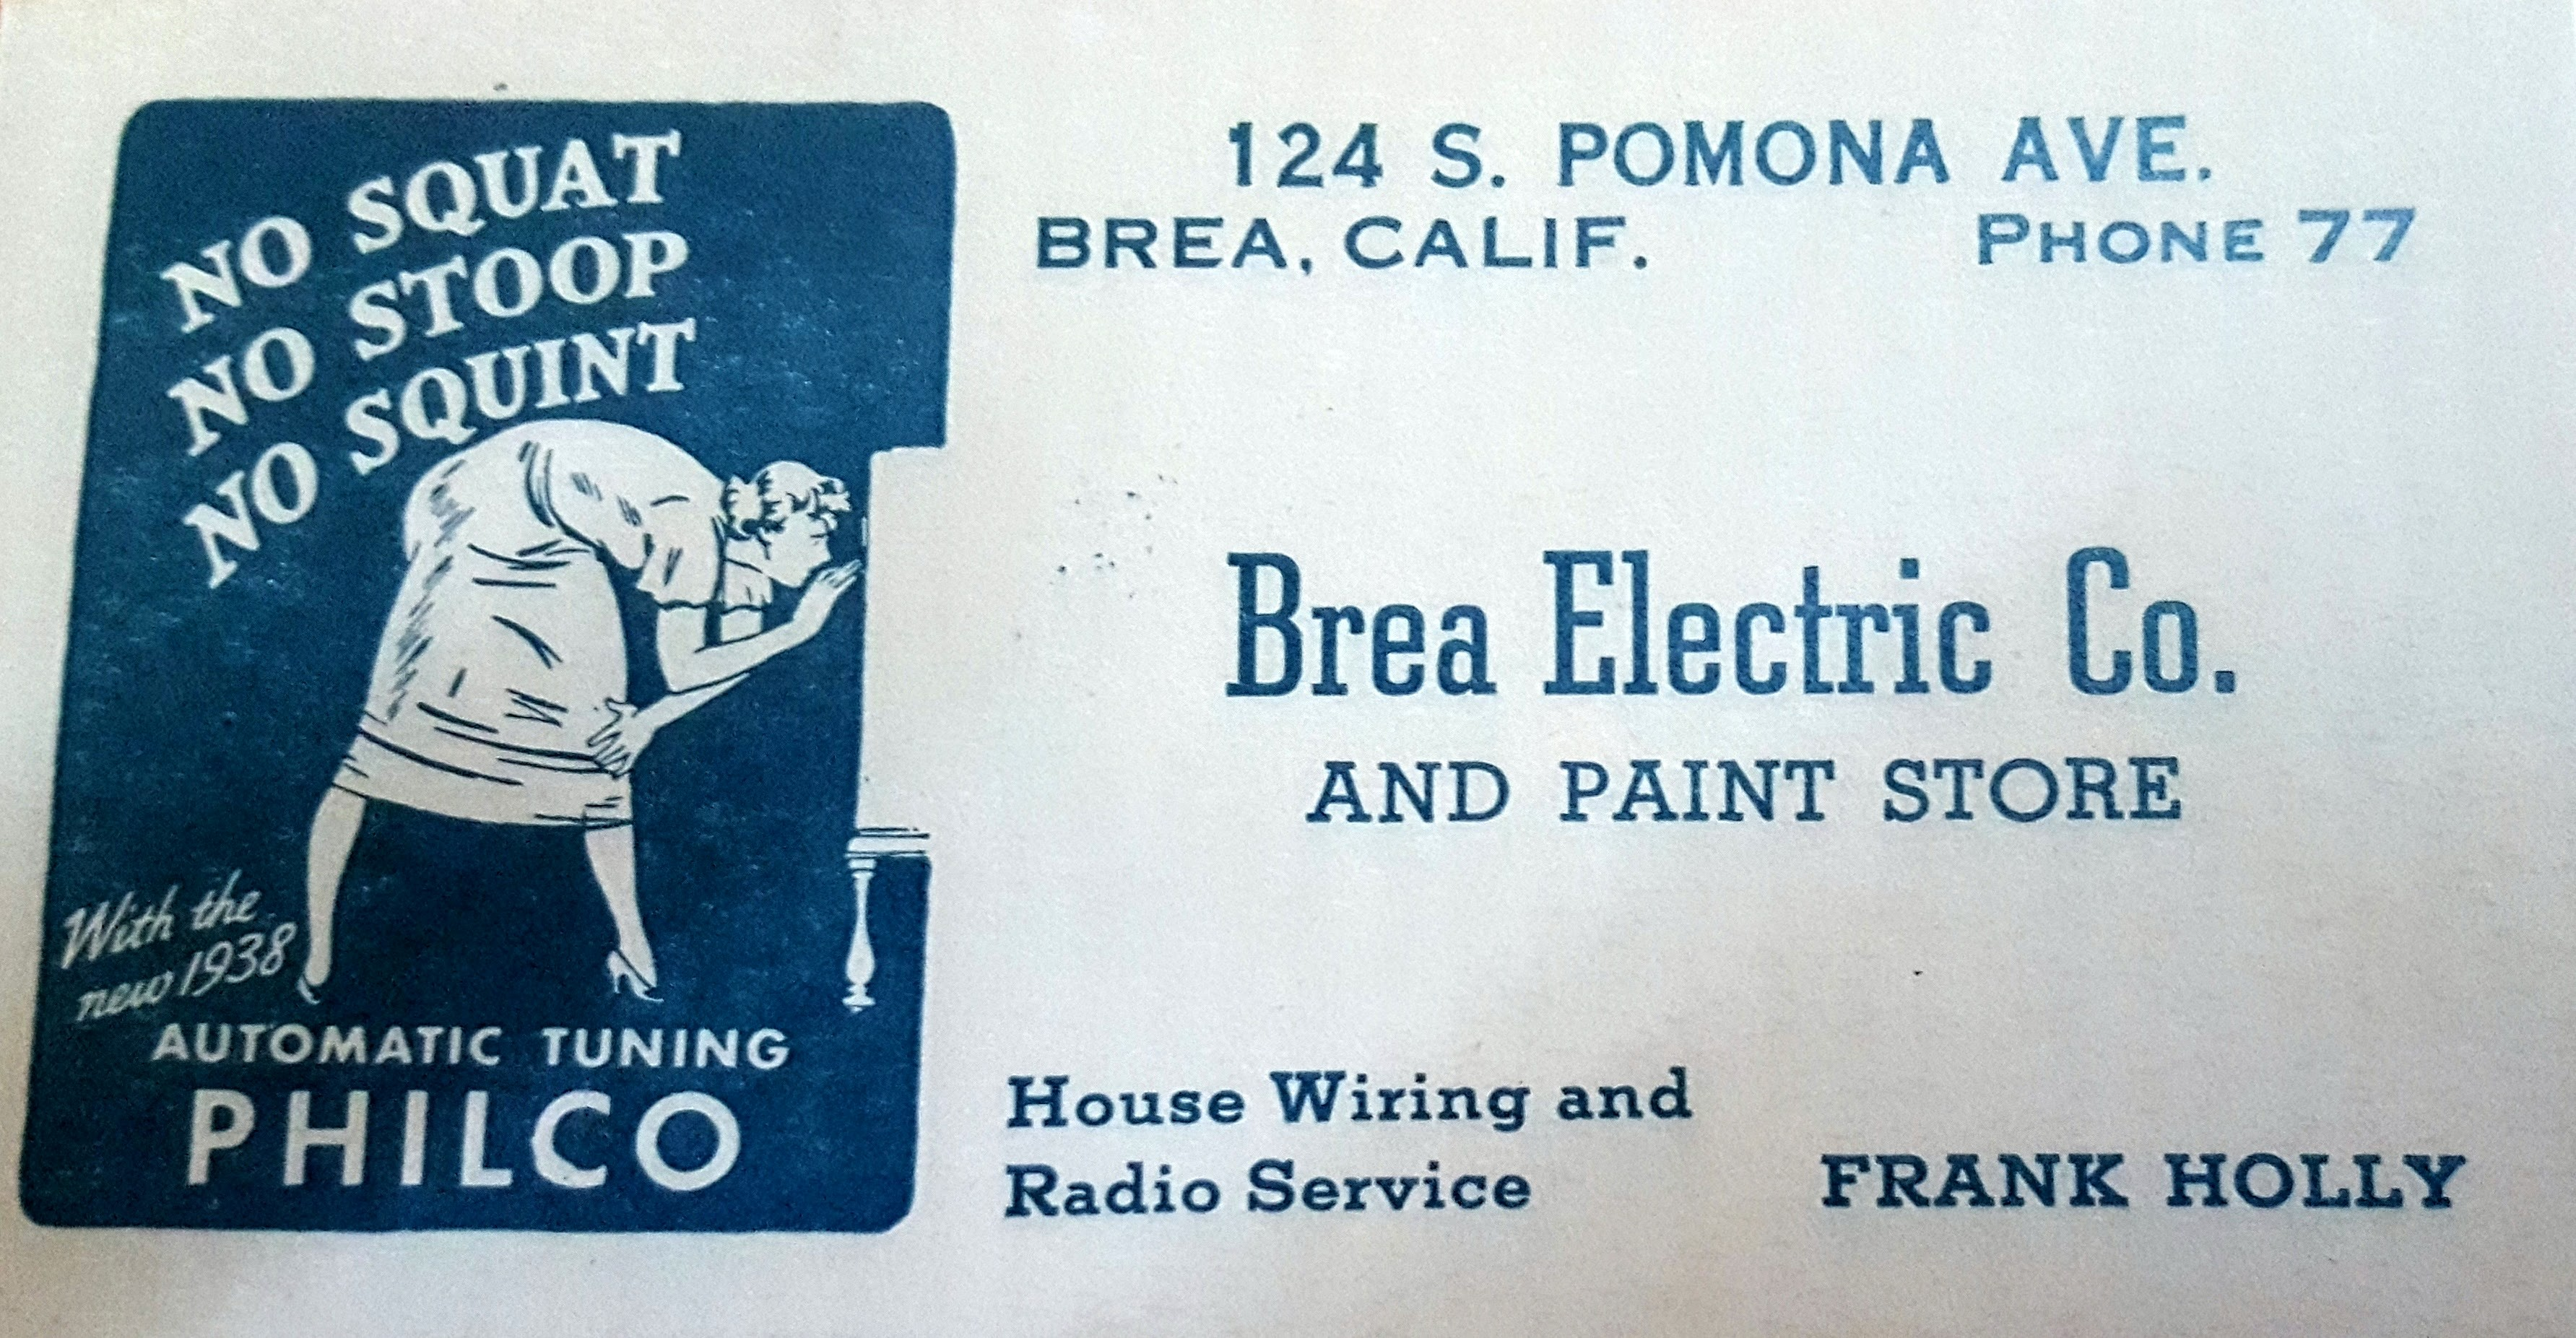 Frank Holly's grandson found an entire box of these business cards from the 1930's. Note the phone number. (Photo Courtesy of Richard Holly)